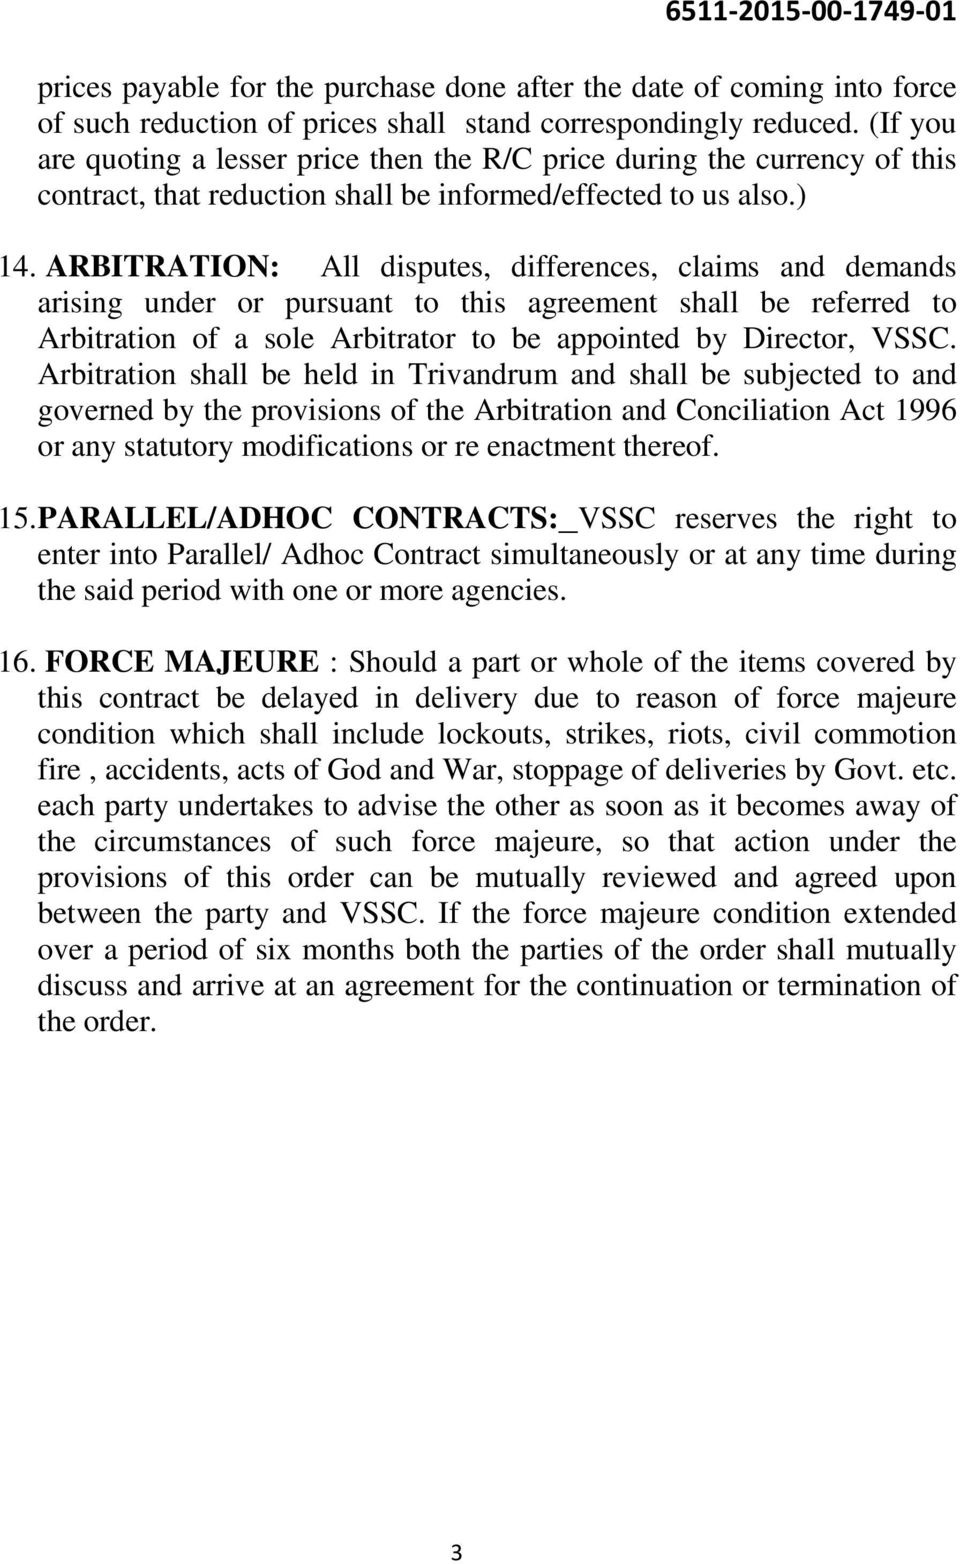 ARBITRATION: All disputes, differences, claims and demands arising under or pursuant to this agreement shall be referred to Arbitration of a sole Arbitrator to be appointed by Director, VSSC.